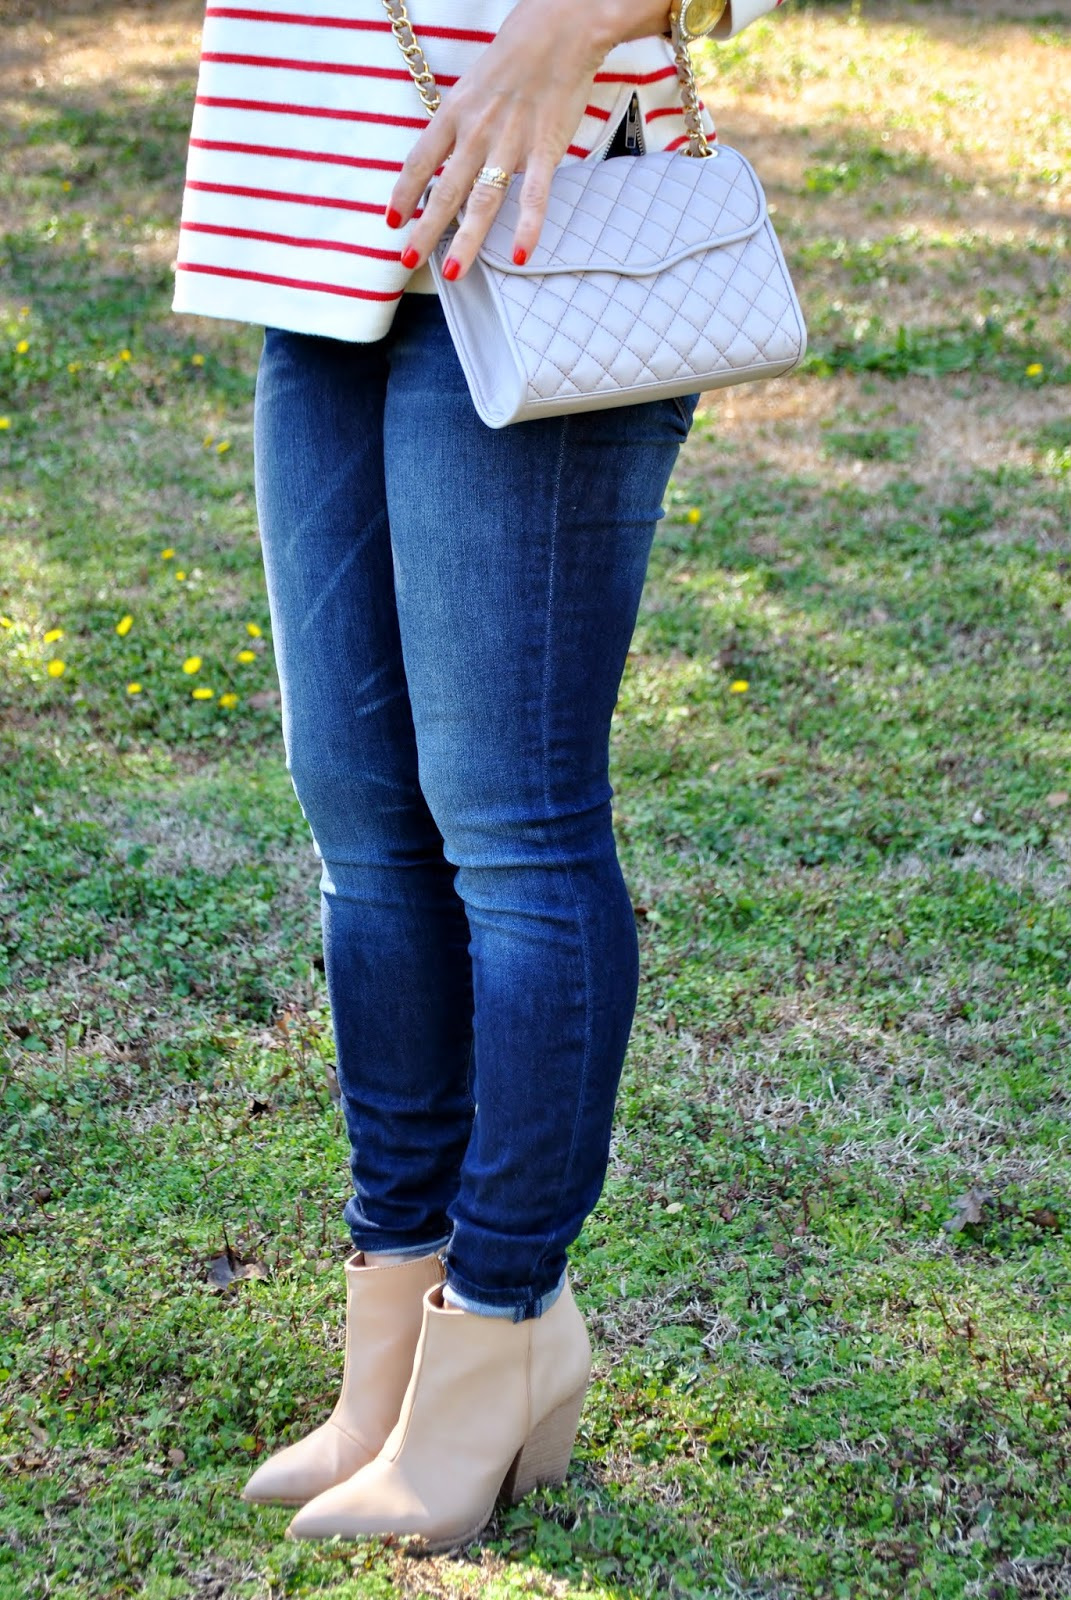 J Crew Striped Sweater, J Crew plaid blanket Scarf, Zara Blanket Scarf, Rebecca Minkoff Quilted Affair Handbag, Madewell Skinny Jeans, Sunshine and Sequins Blog